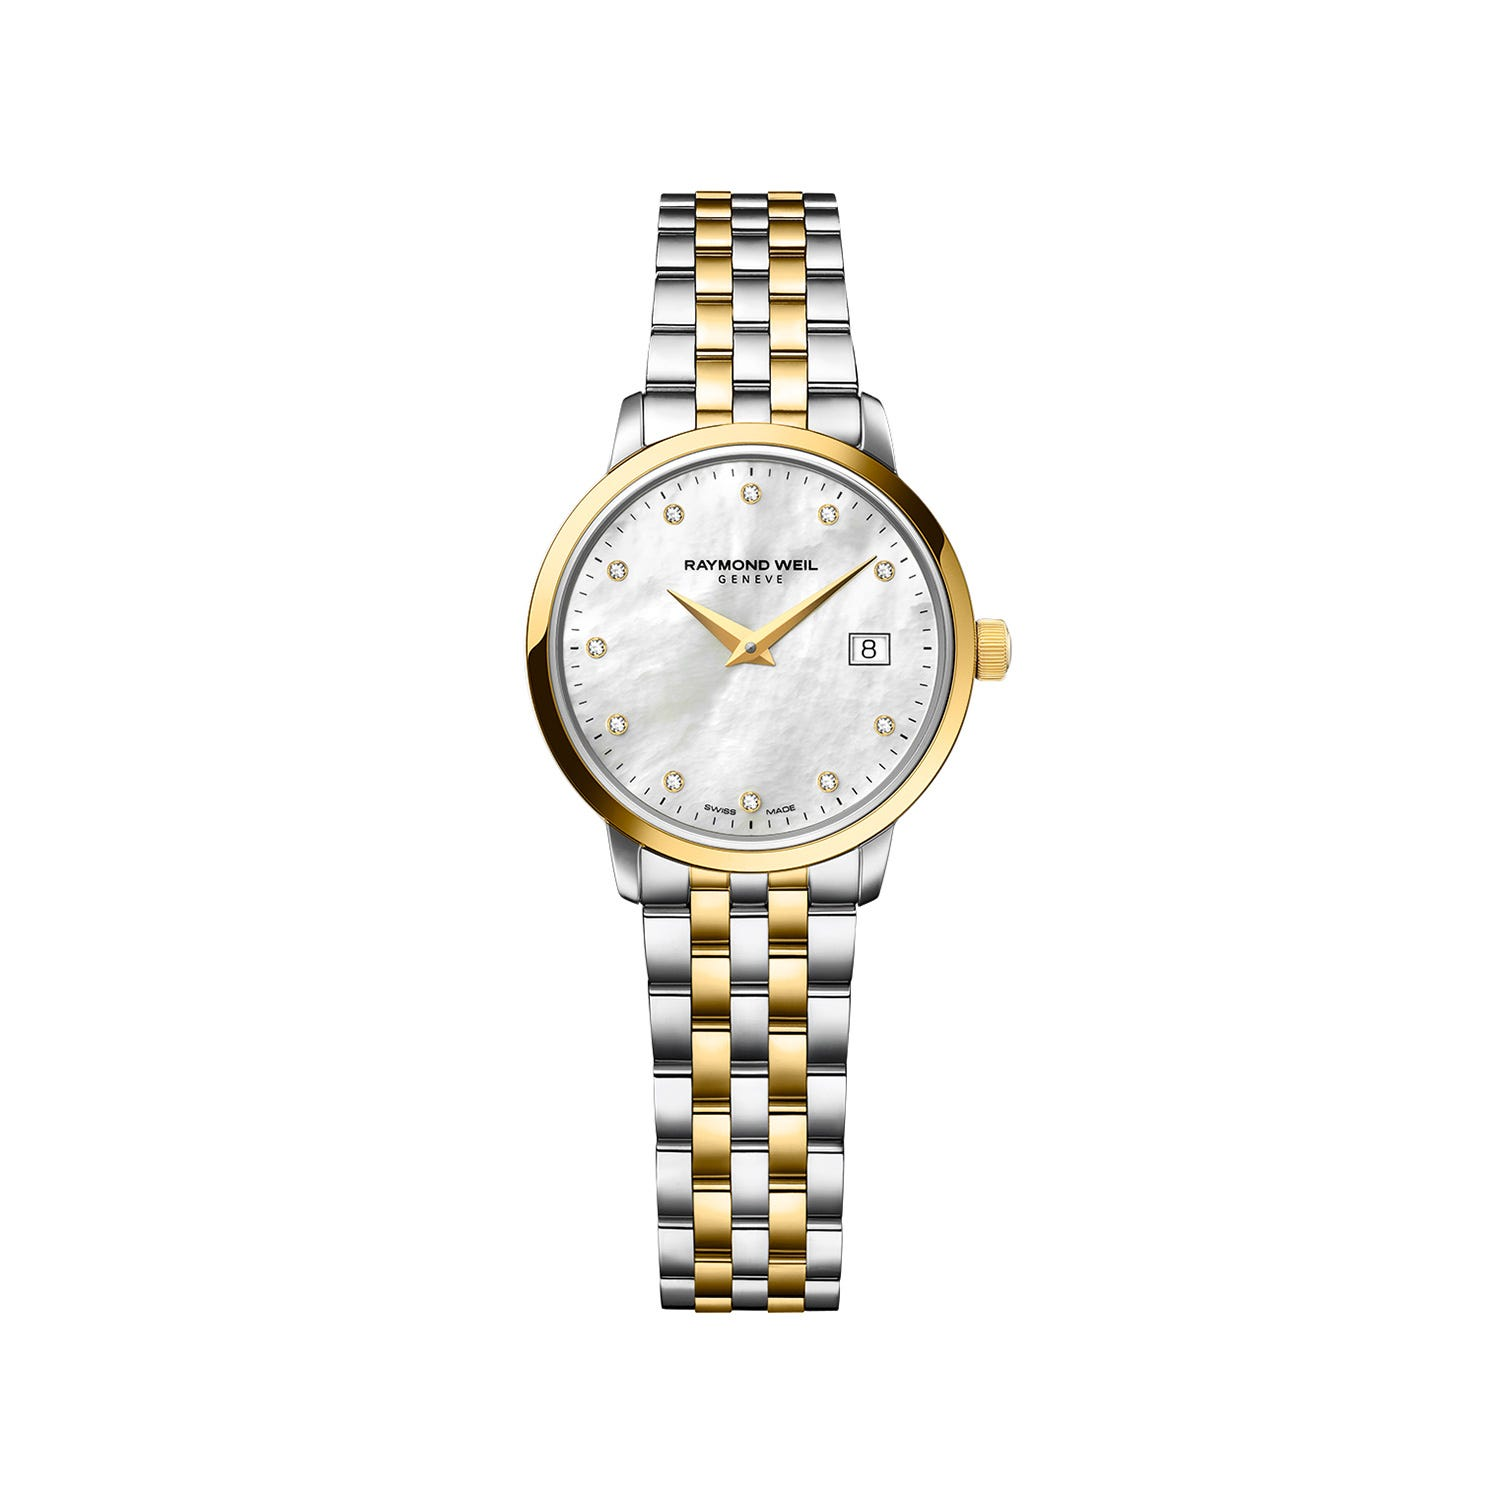 Raymond Weil Traditional ladies' diamond dot dial stainless steel bracelet watch